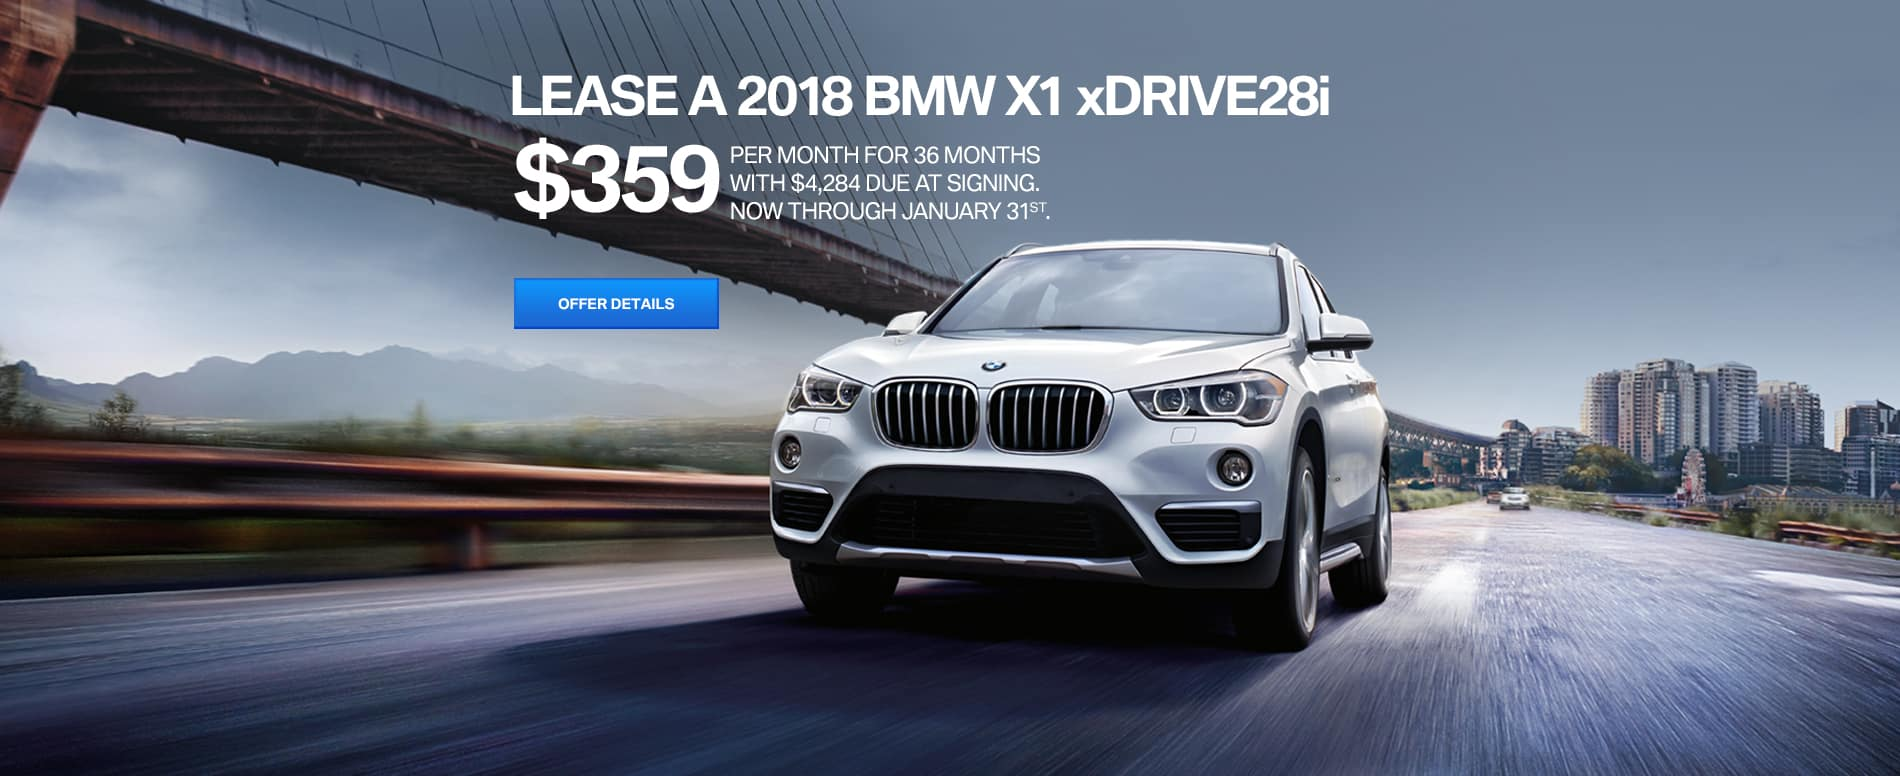 2018 BMW X1 xDRIVE28i January